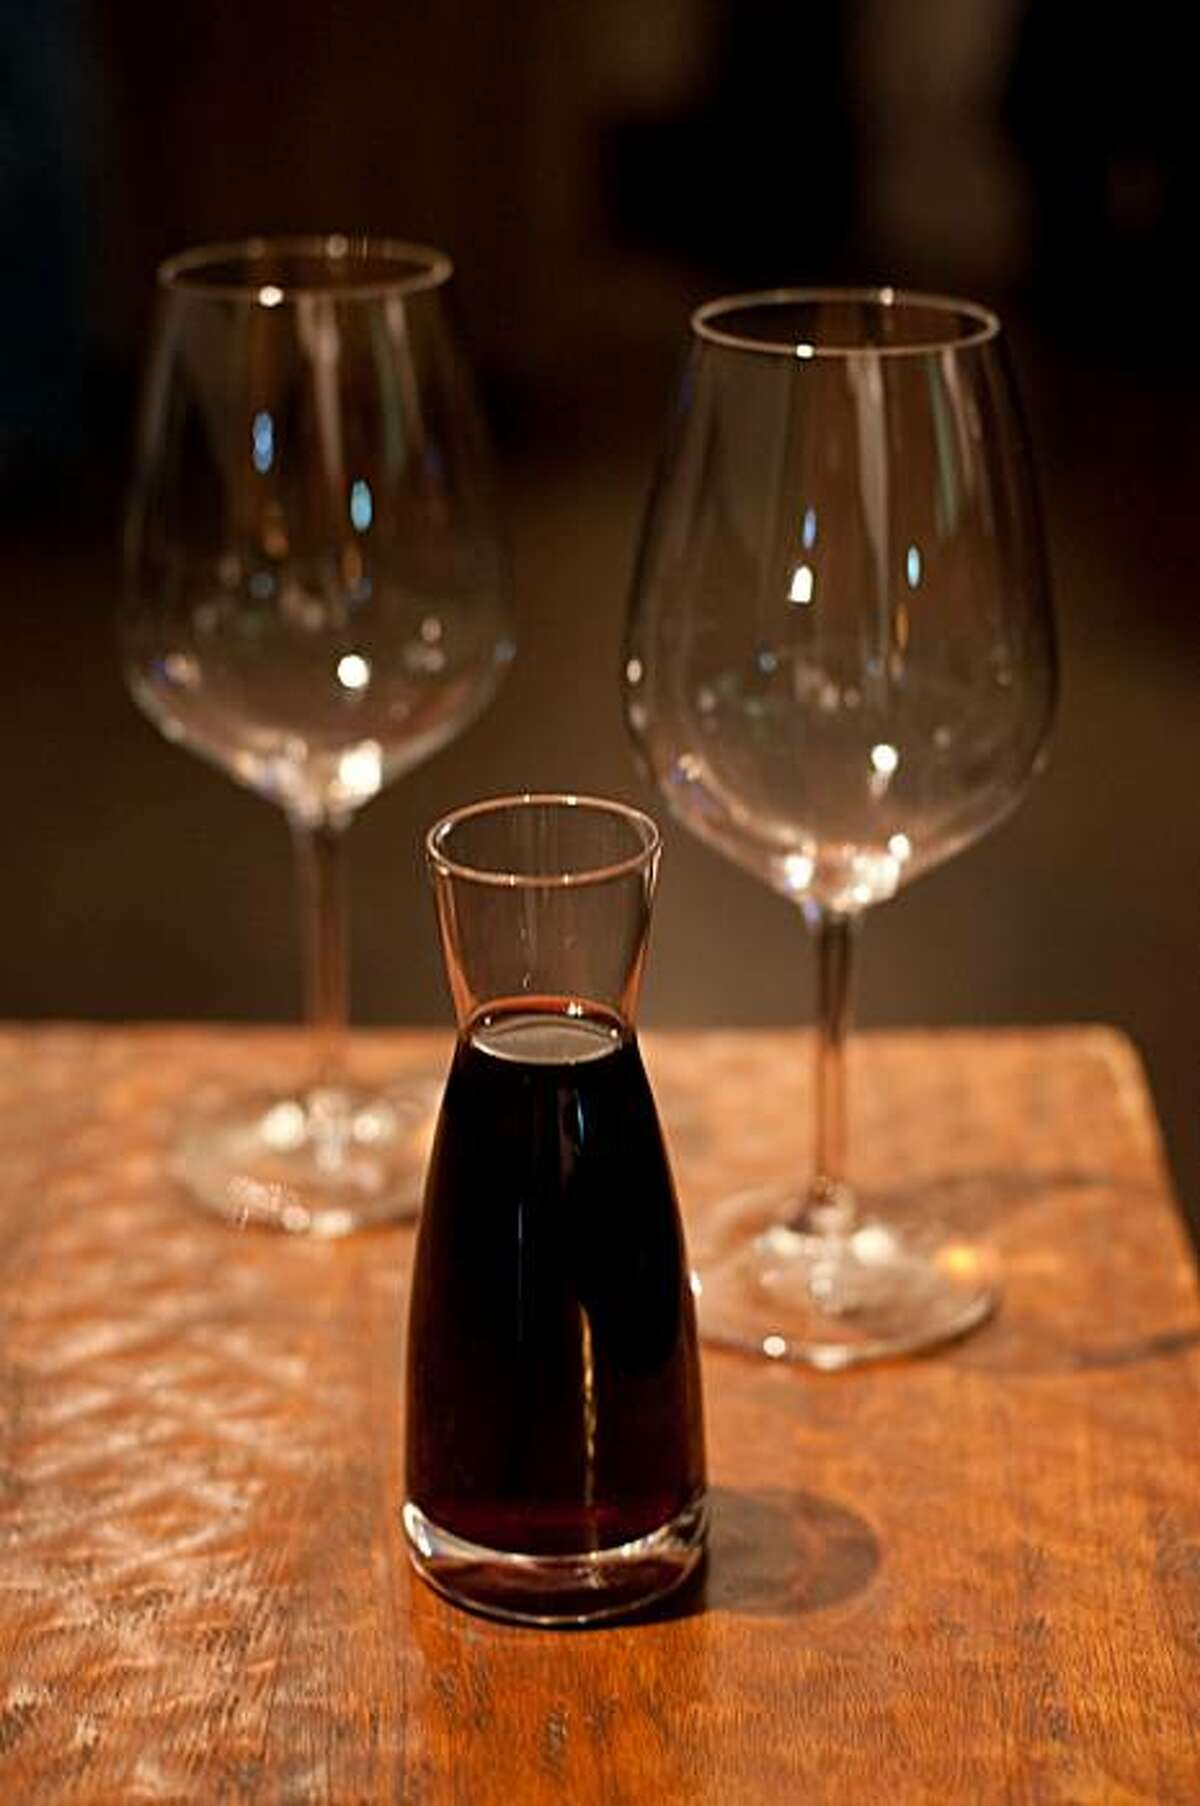 Guests of the restaurant Donato Enoteca have their choice of approximately 30 wines that can be served in this style, an 8-ounce carafe, with more than an additional 100 wines served by the bottle.